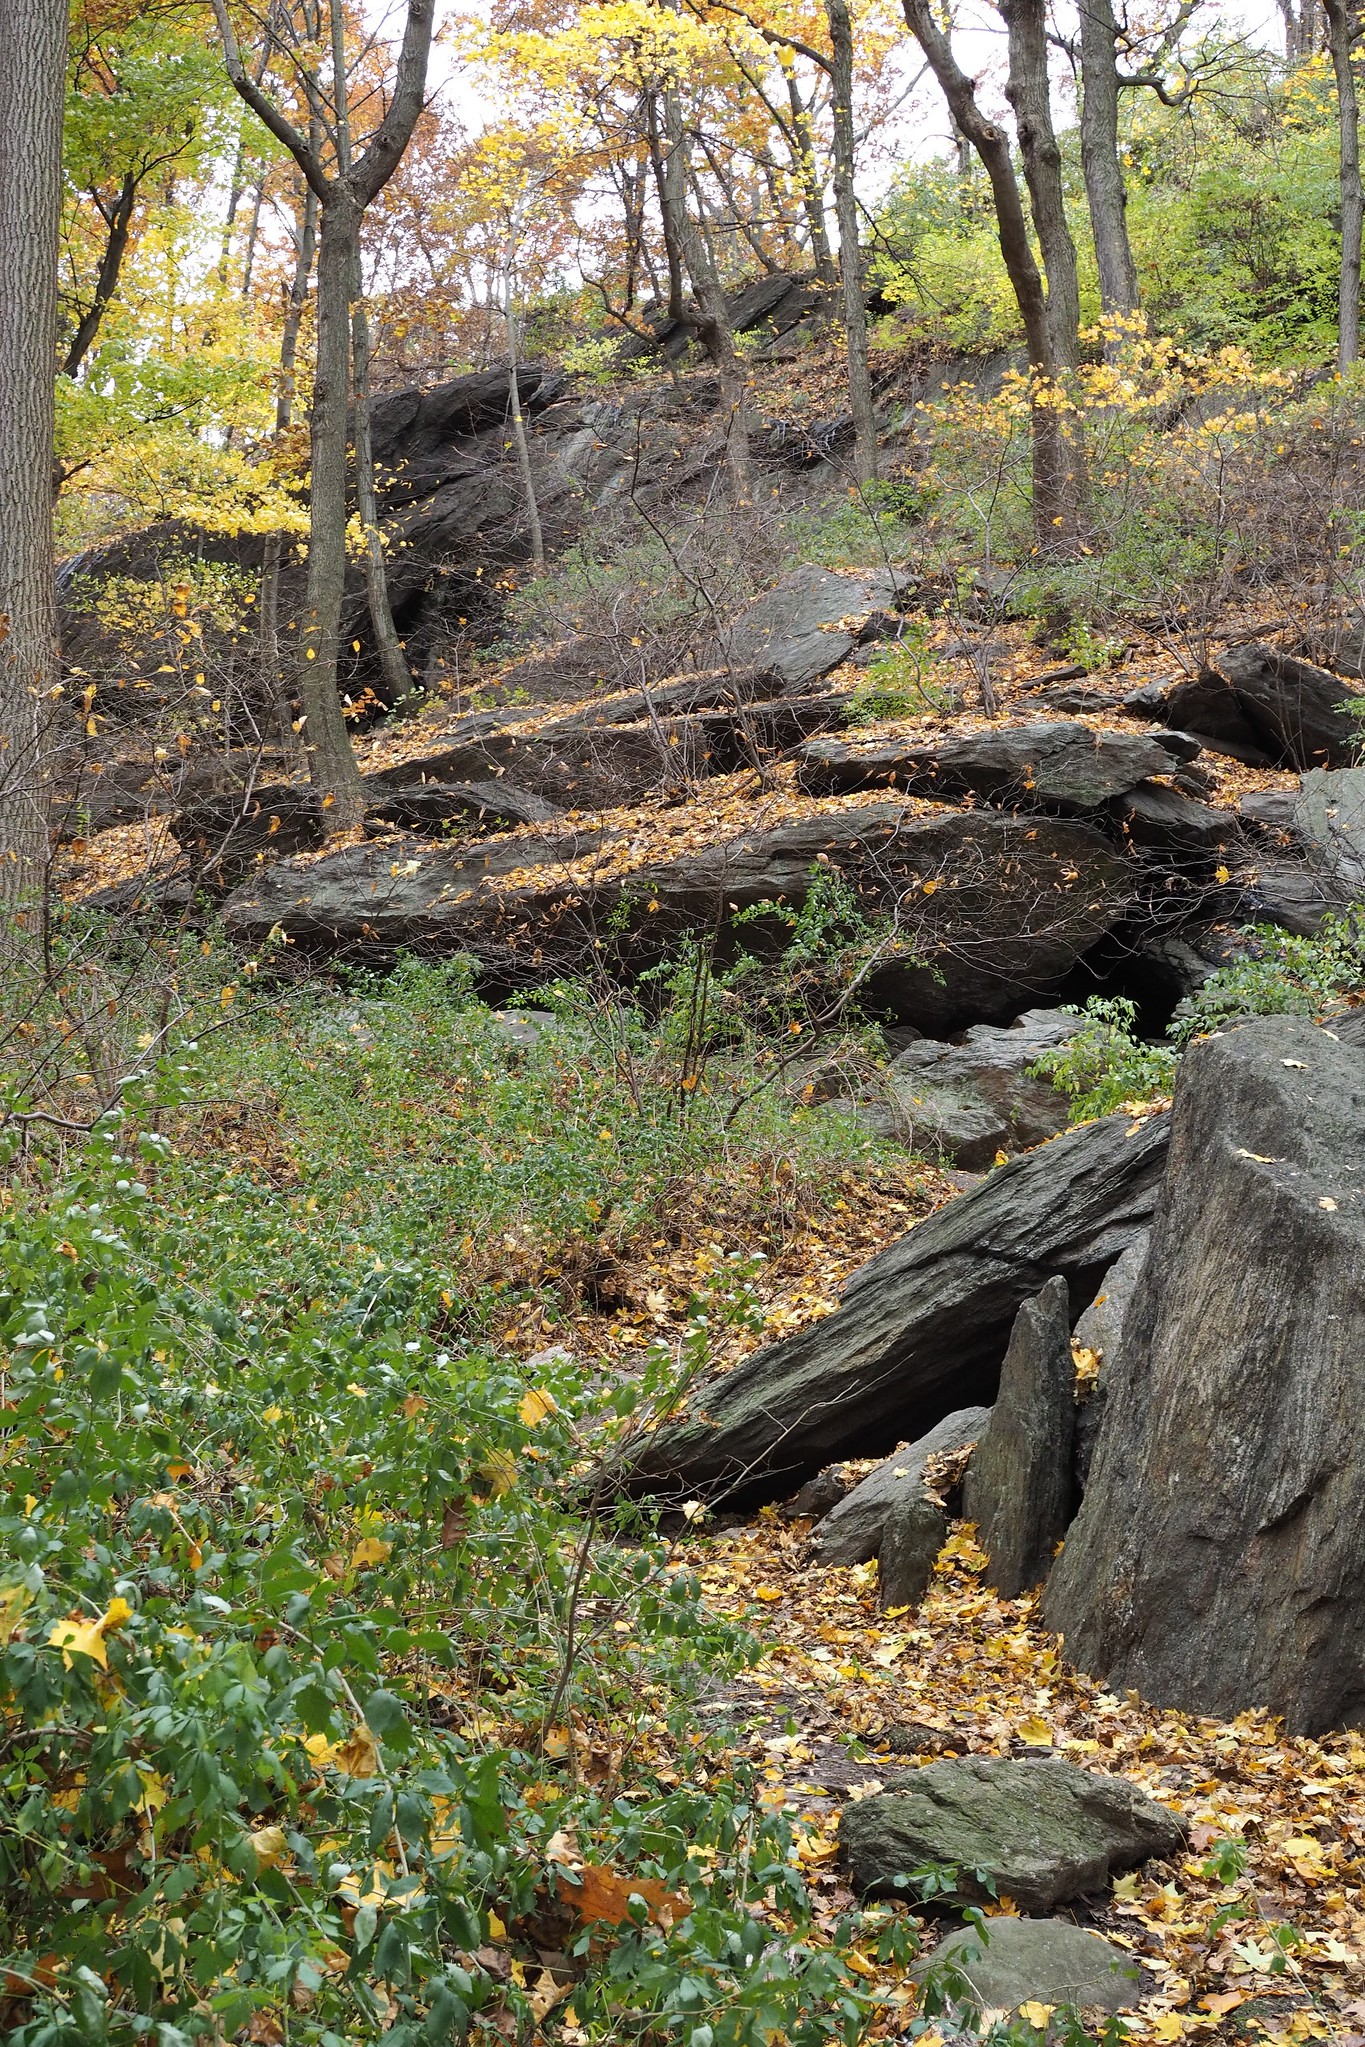 Indian Caves at Inwood Hill Park